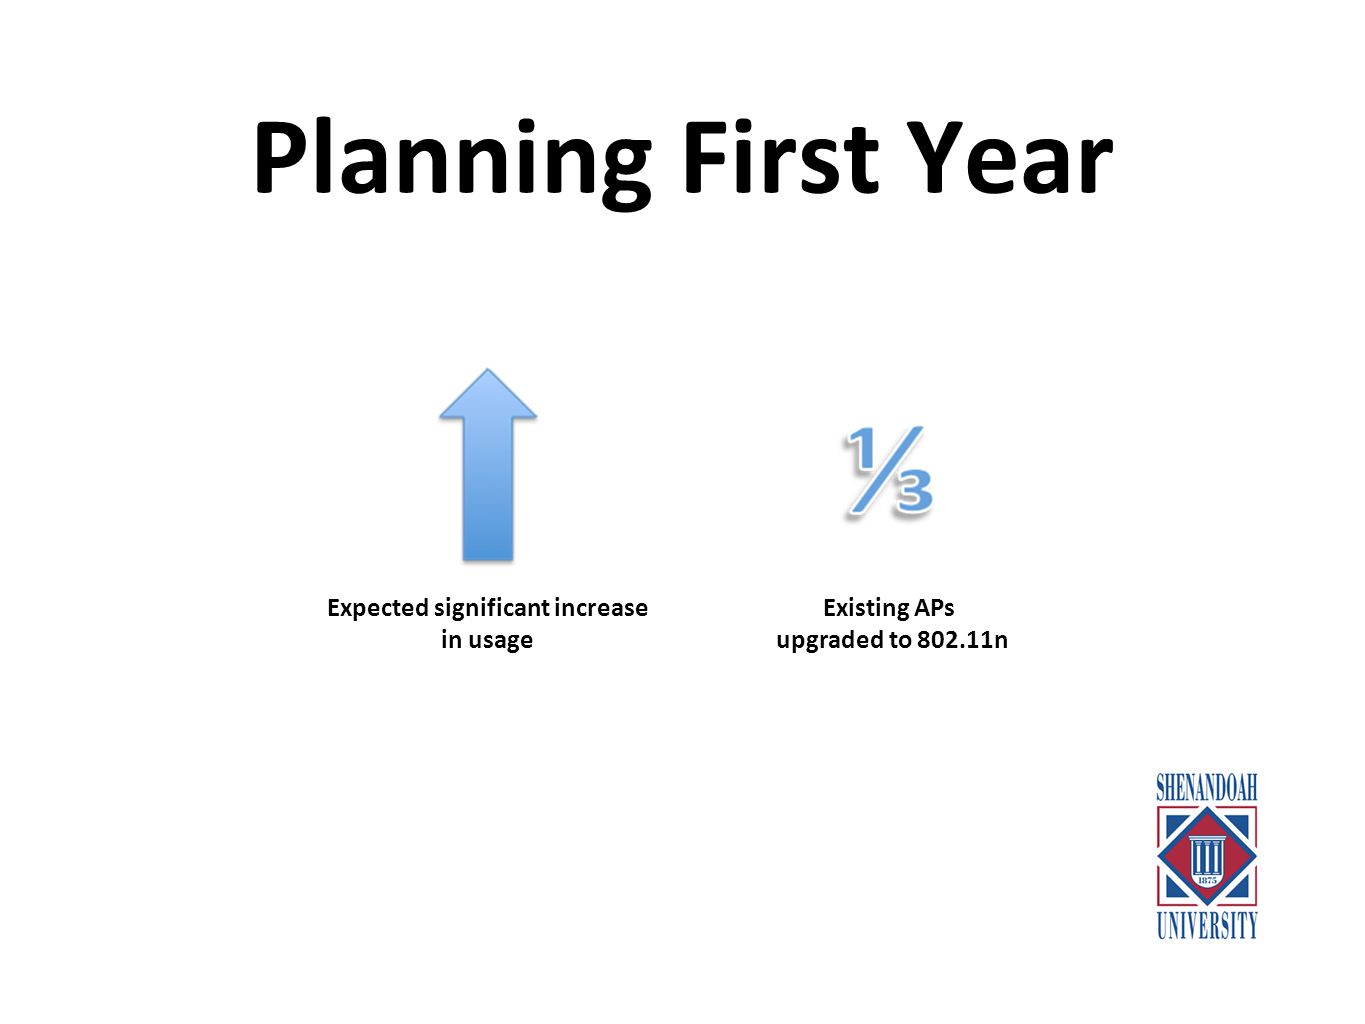 Planning First Year Increased coverage by re-purposing older APs Increased number of APs from 120 to 160